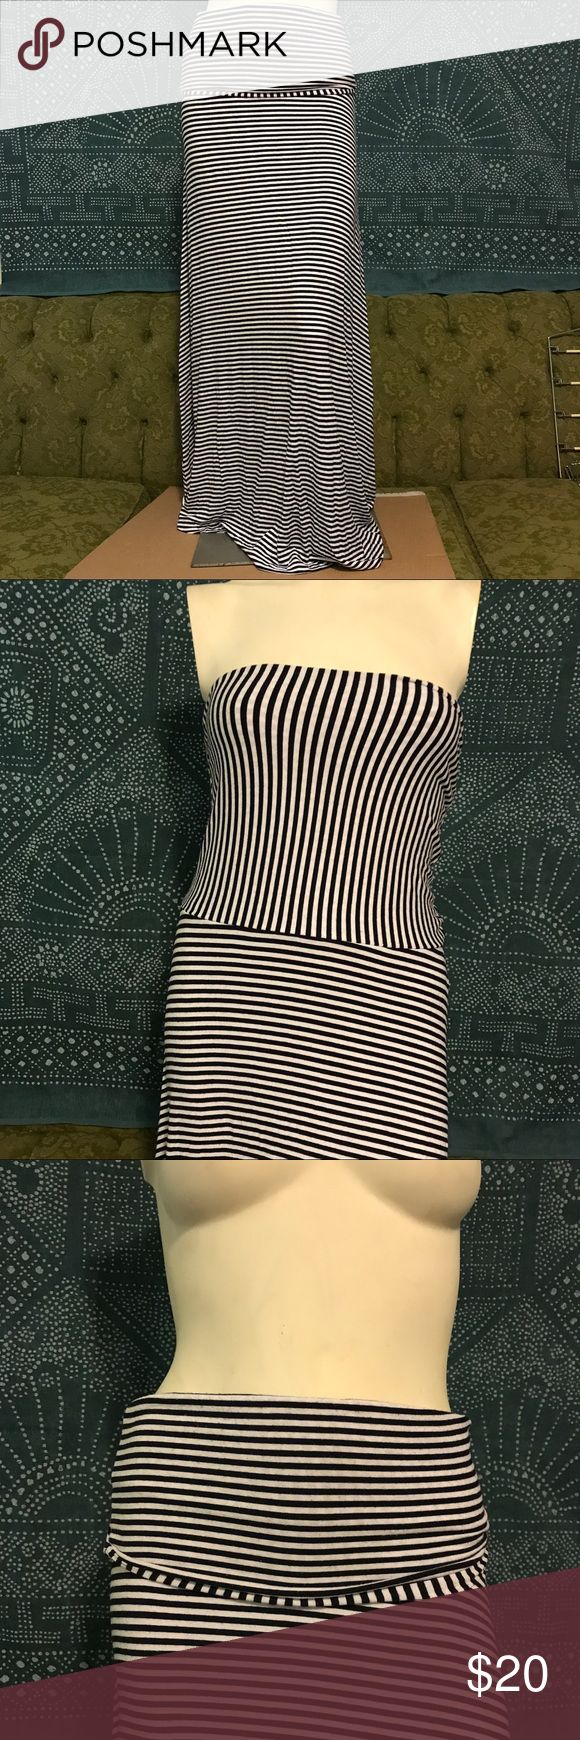 Gap black and white Maxi skirt/ Tube Dress size S This is a good cotton piece that can be worn two ways. Folded over as a skirt and all the way unfolded like a tube top Maxi dress. Can be worn with tights underneath in these colder months! GAP Skirts Maxi